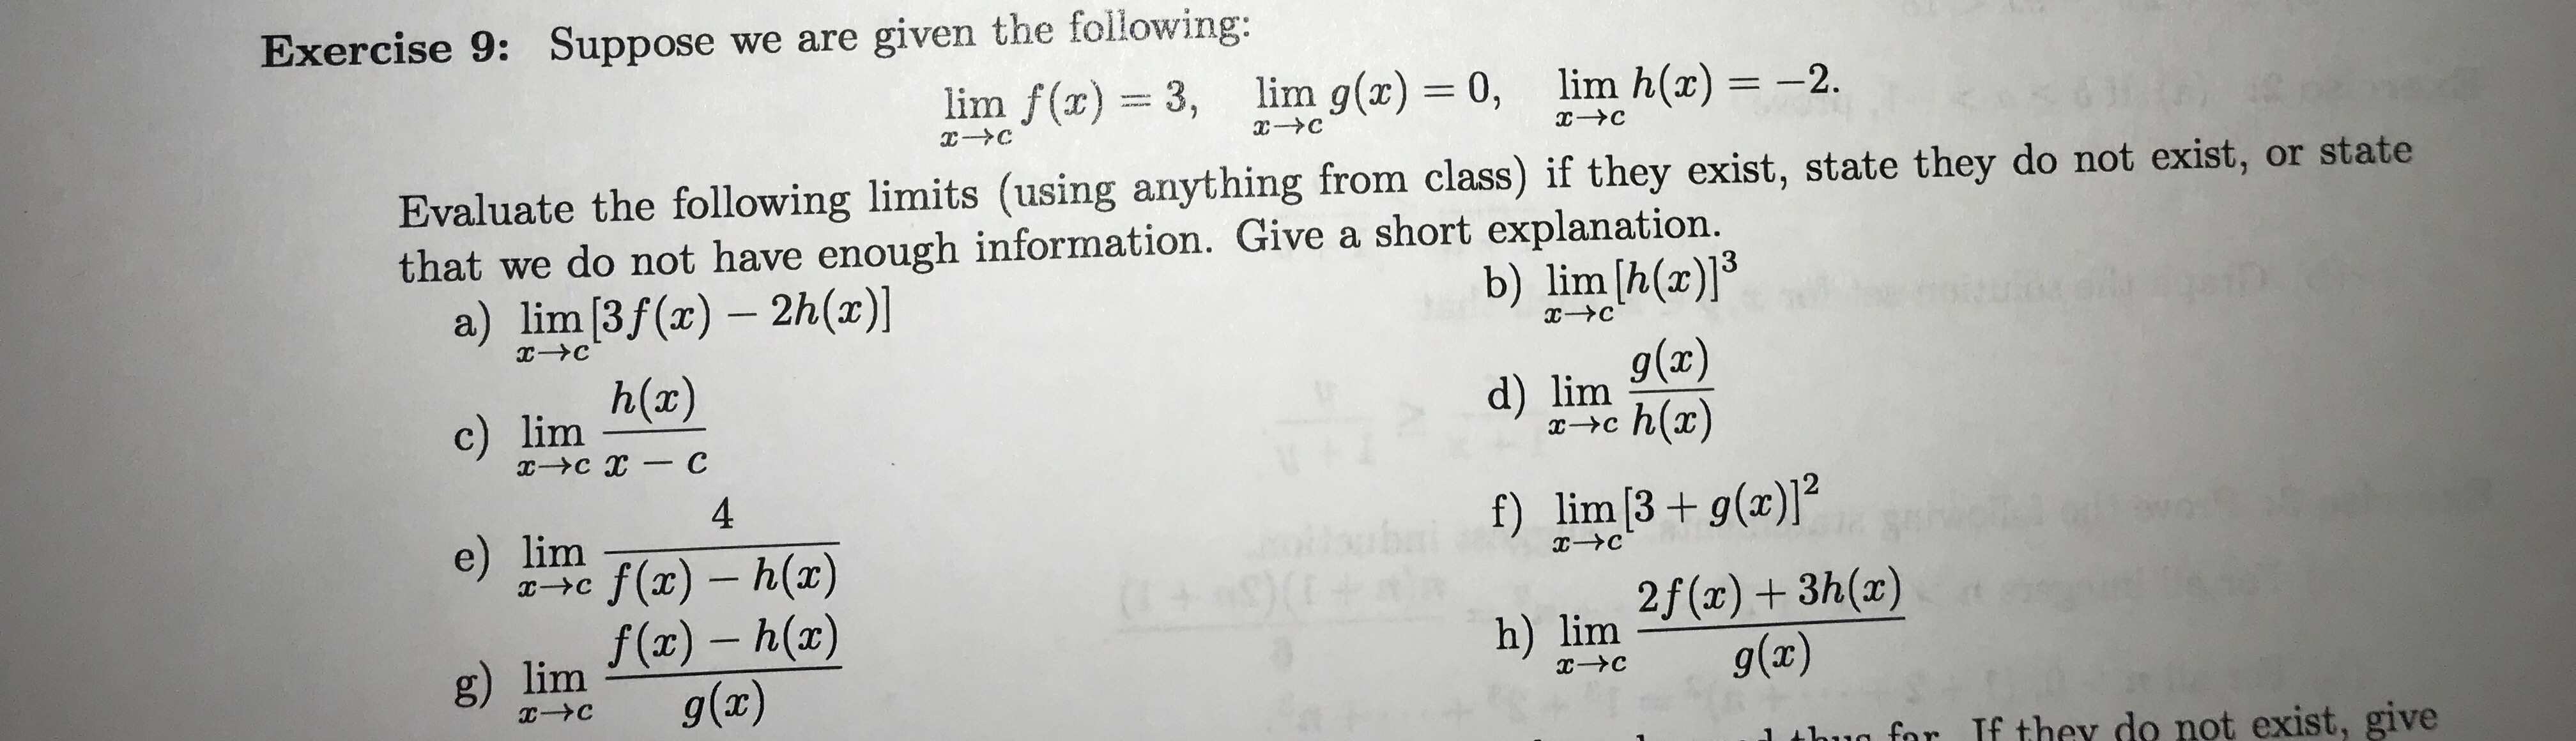 Exercise 9: Suppose we are given the following: lim f(x)3, lim g(x) 0, lim h(x) -2 C C Evaluate the following limits (using anything from class) if they exist, state they do not exist, or state that we do not have enough information. Give a short explanation. a) lim [3f (x) 2h(x)] b) lim [h(a)] h(x) g(x) d) lim h(ar) c) lim -Ус х — С 4 f) lim [3g(x)] e) lim ilbuba (+ 9 0 f(x) h(a) f(ar)-h(ar) g(x) C IXC 2f(x)3h(a) g(x) IX h) lim g) lim с-Ус x-C for If they do not exist, give